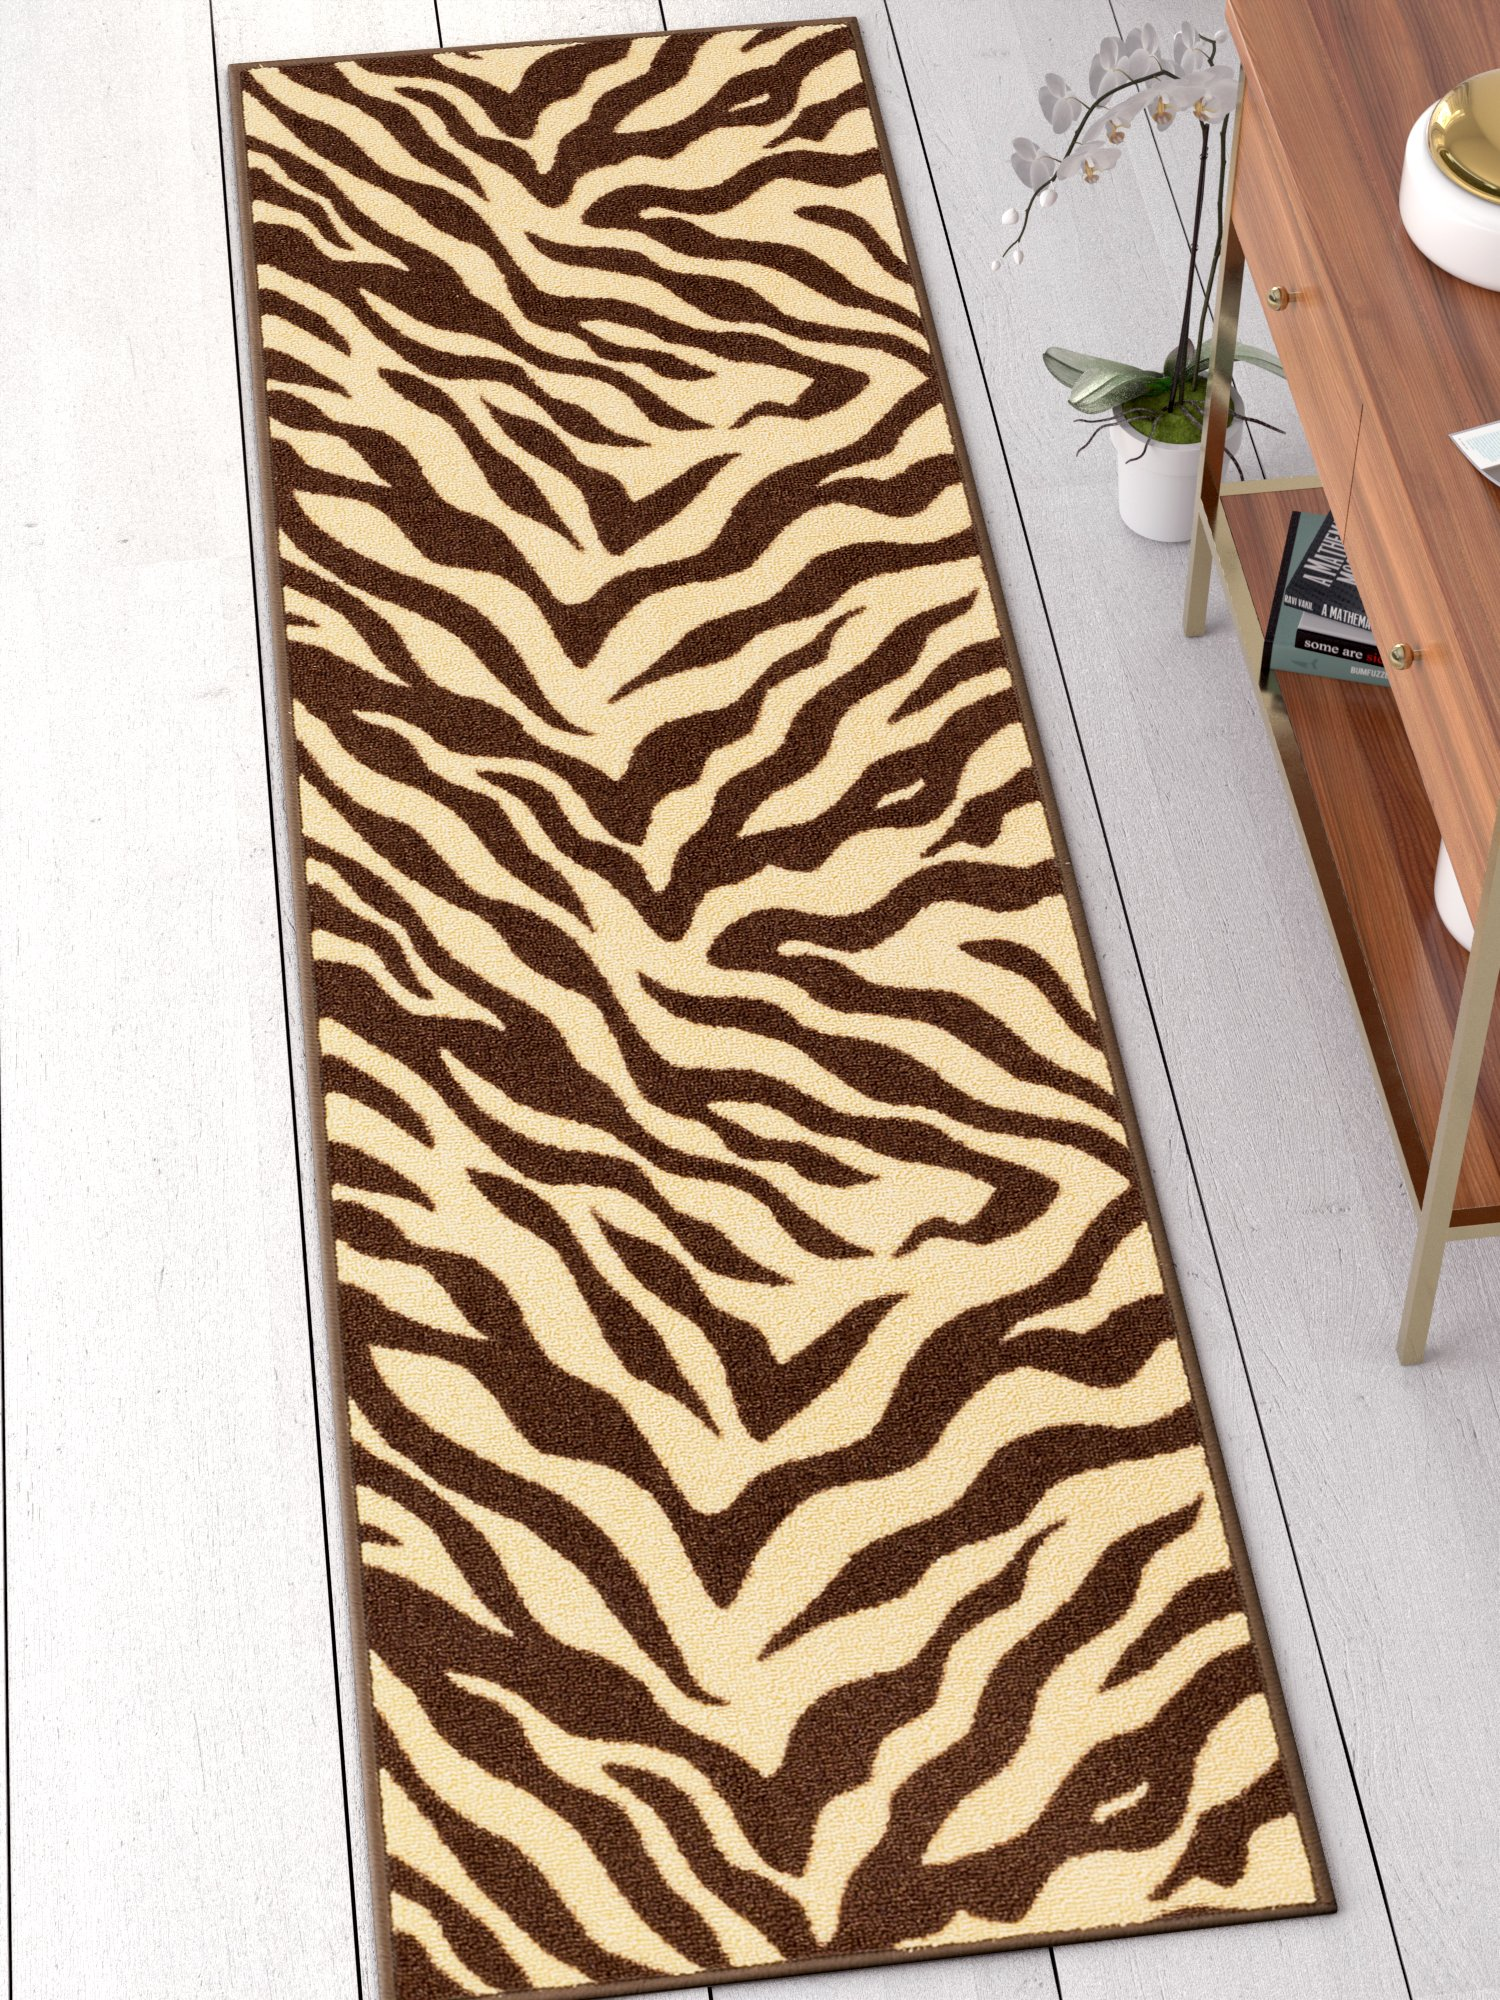 Well Woven 25012 Zebra Kings Court Modern Animal Print 2' x 7 Indoor/Outdoor Area Rug, 2' x 7' Runner, Brown